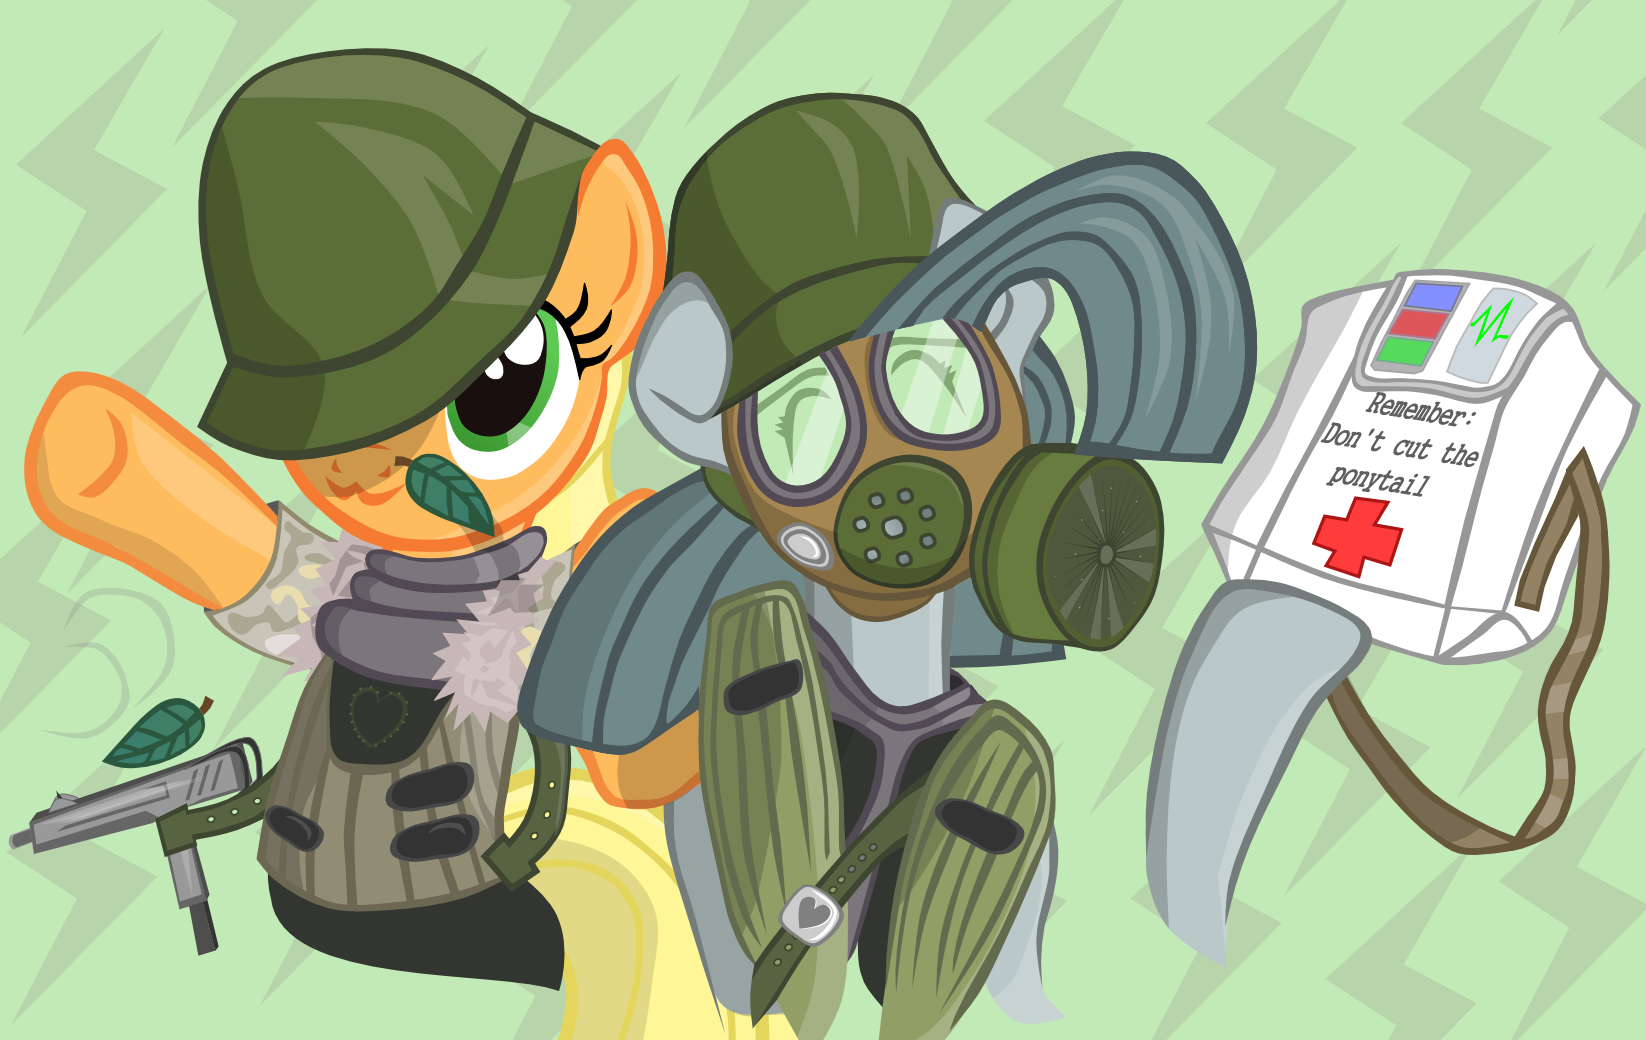 Half Life Opposing Force Applejack And Inkiepie By Lulilulilaj